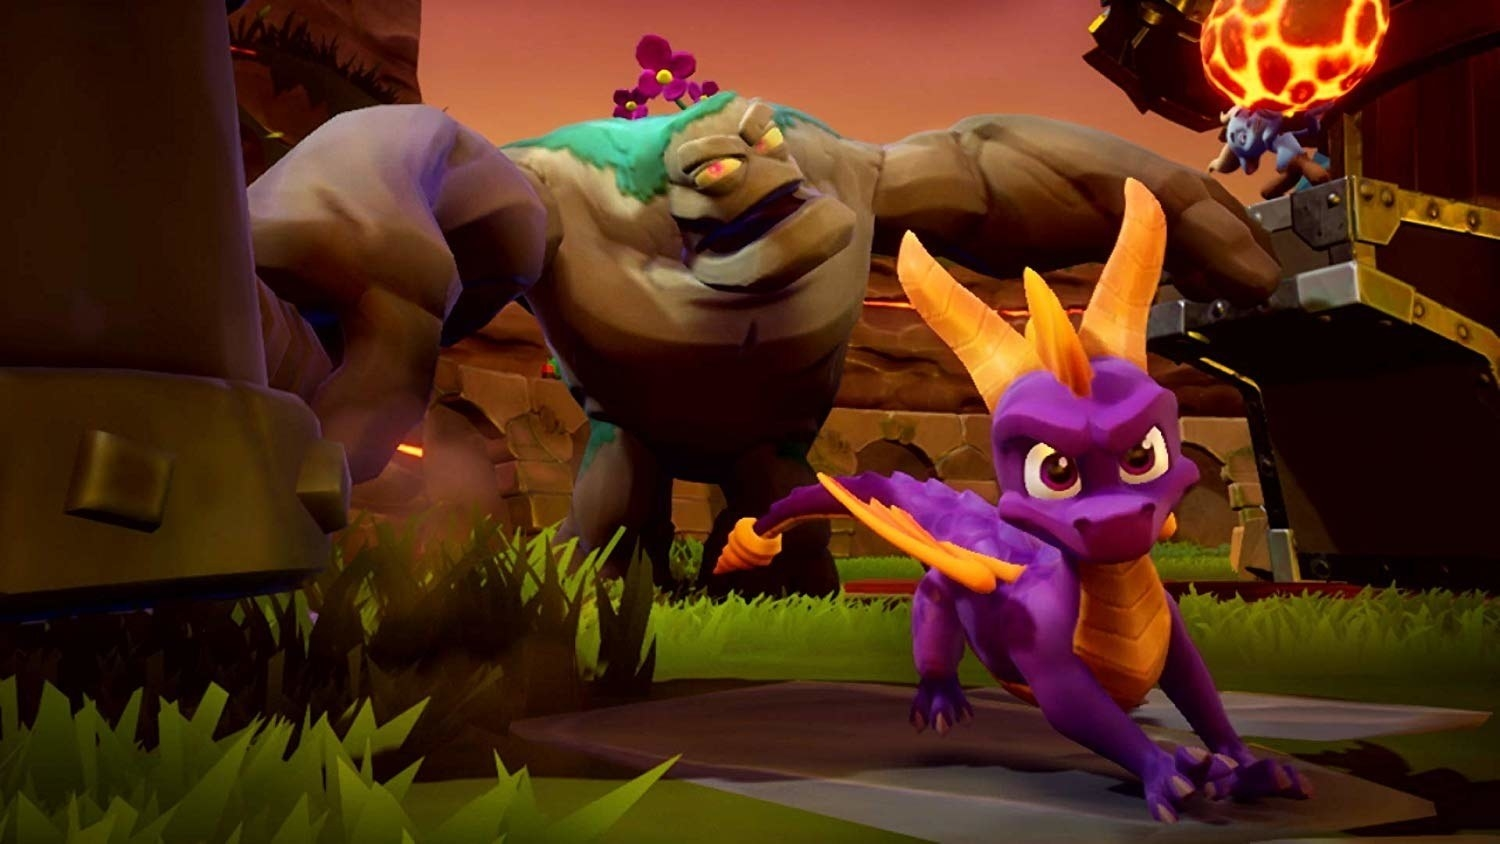 Spyro running toward the camera with a large rock monster in pursuit